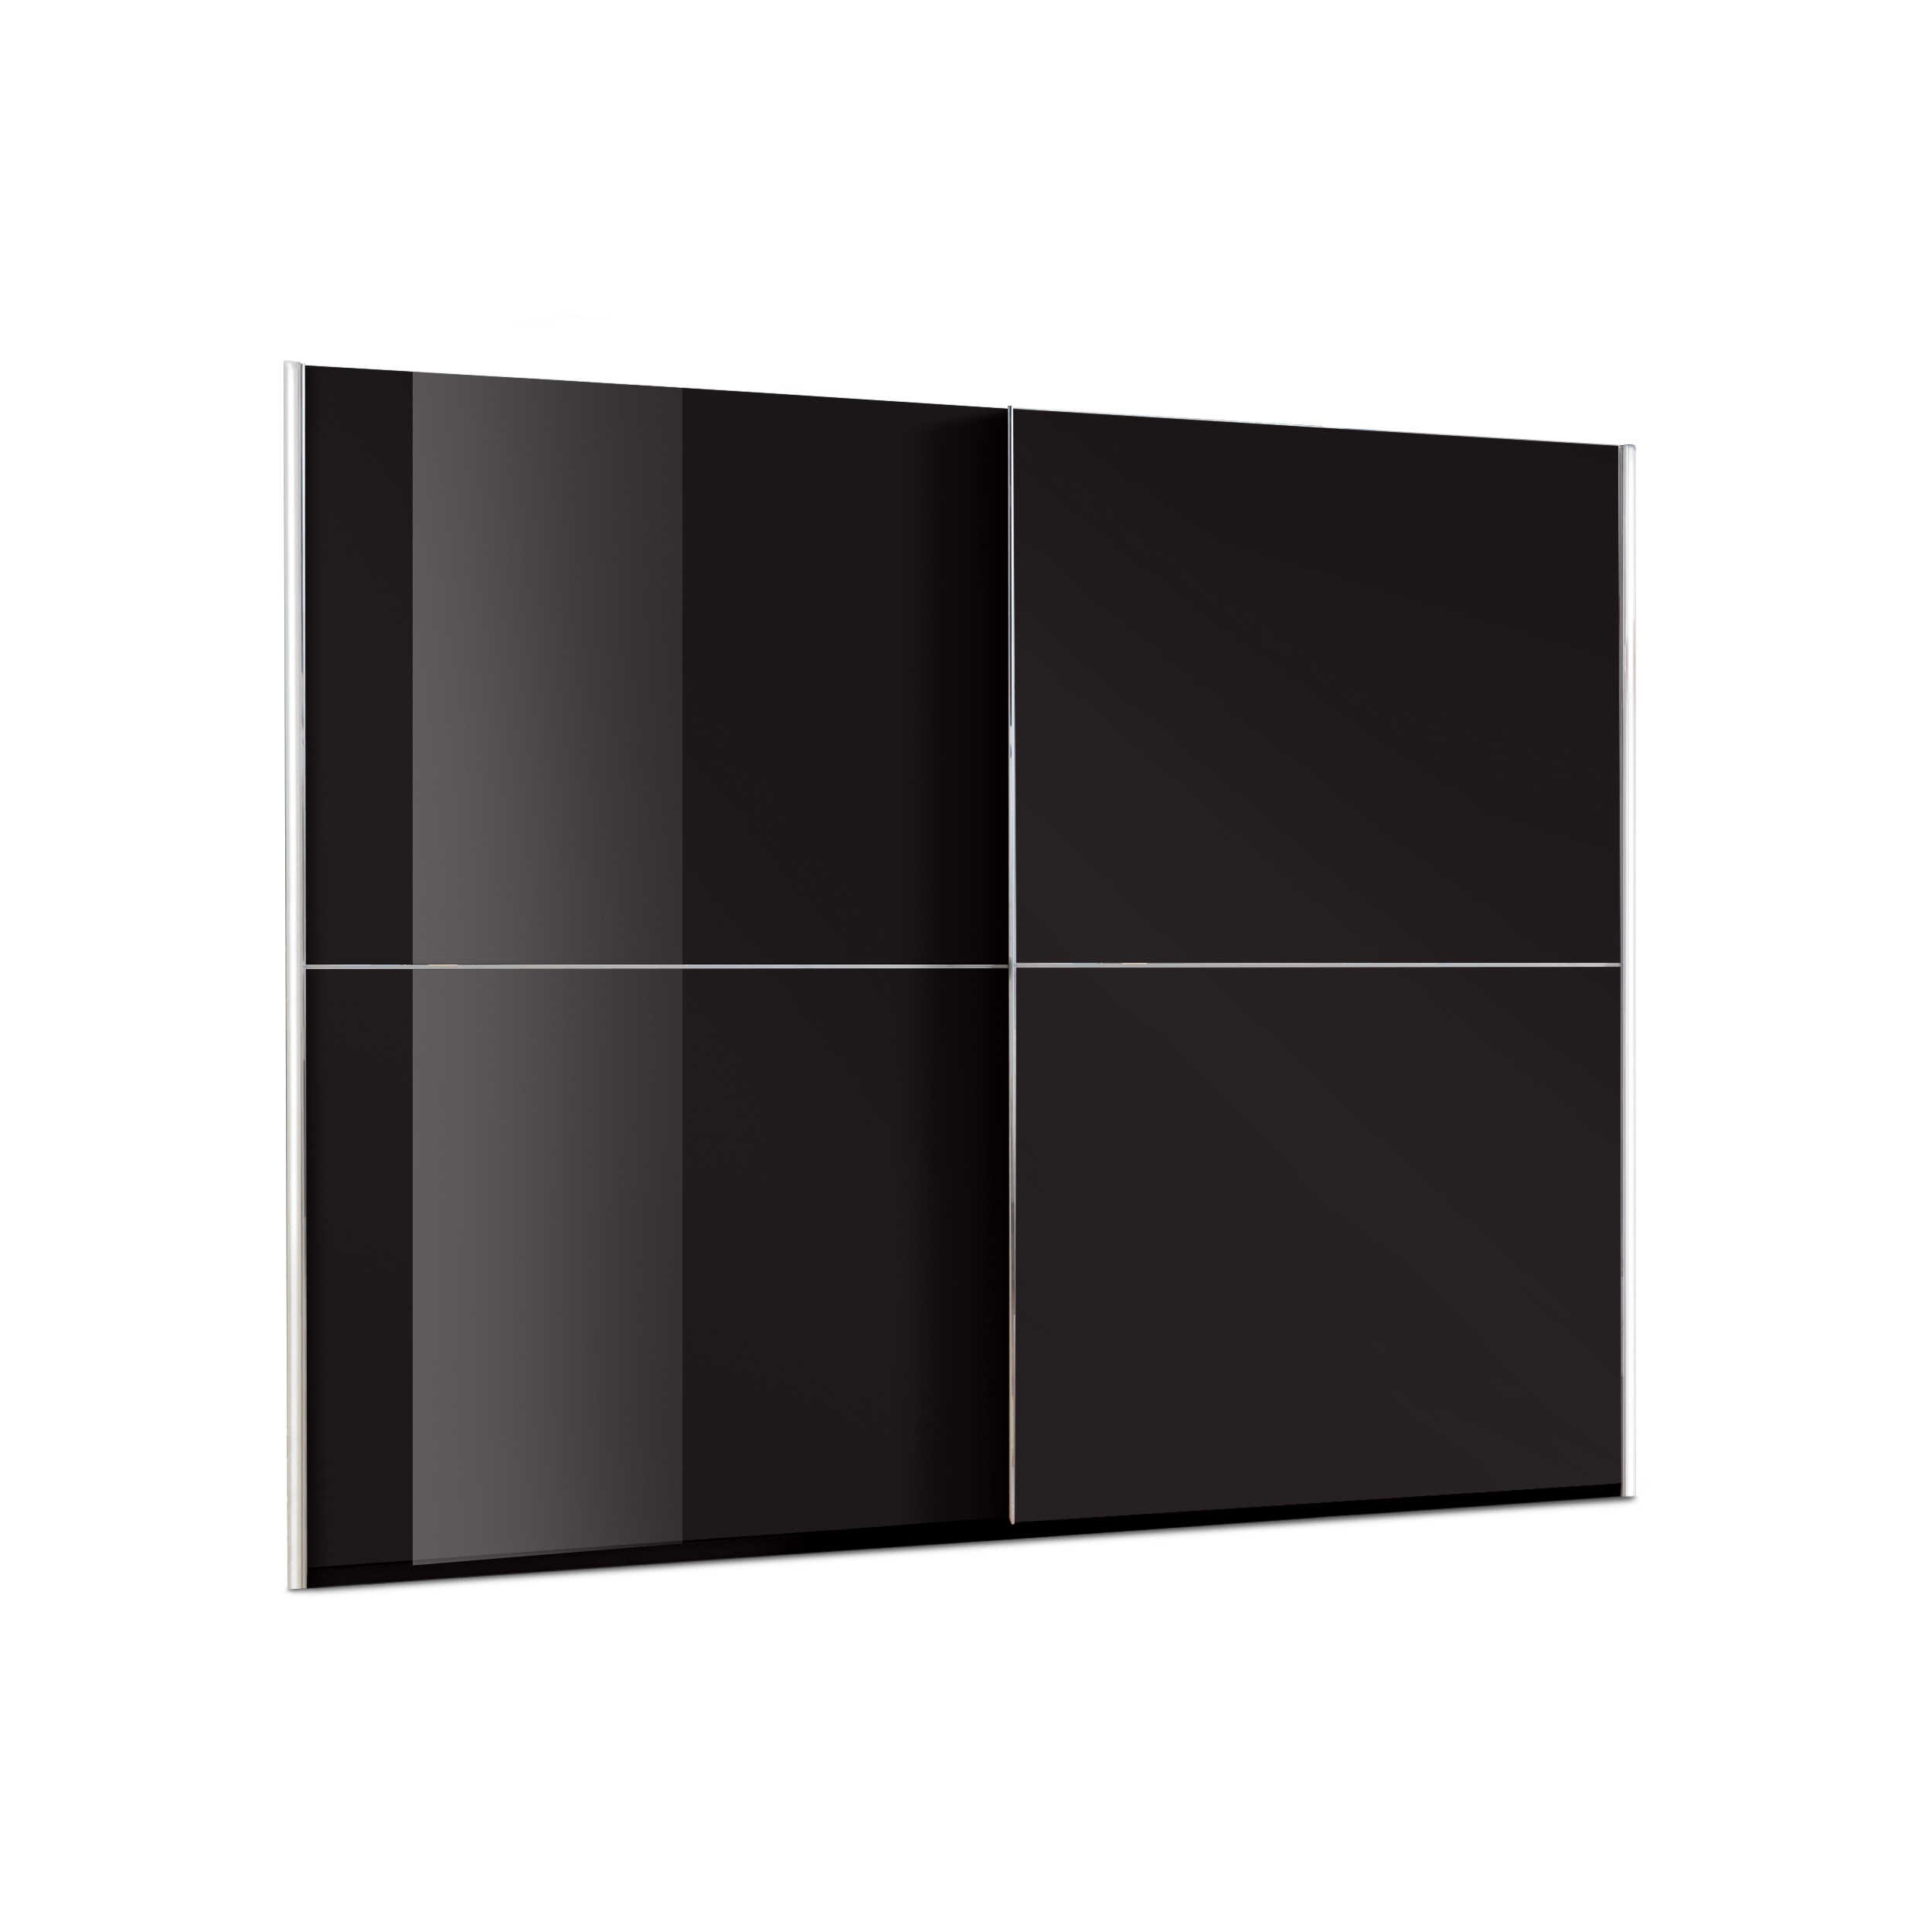 set one by musterring schwebet renschrank pasadena 250 x 216 cm grau glas 250 x 216 cm online. Black Bedroom Furniture Sets. Home Design Ideas